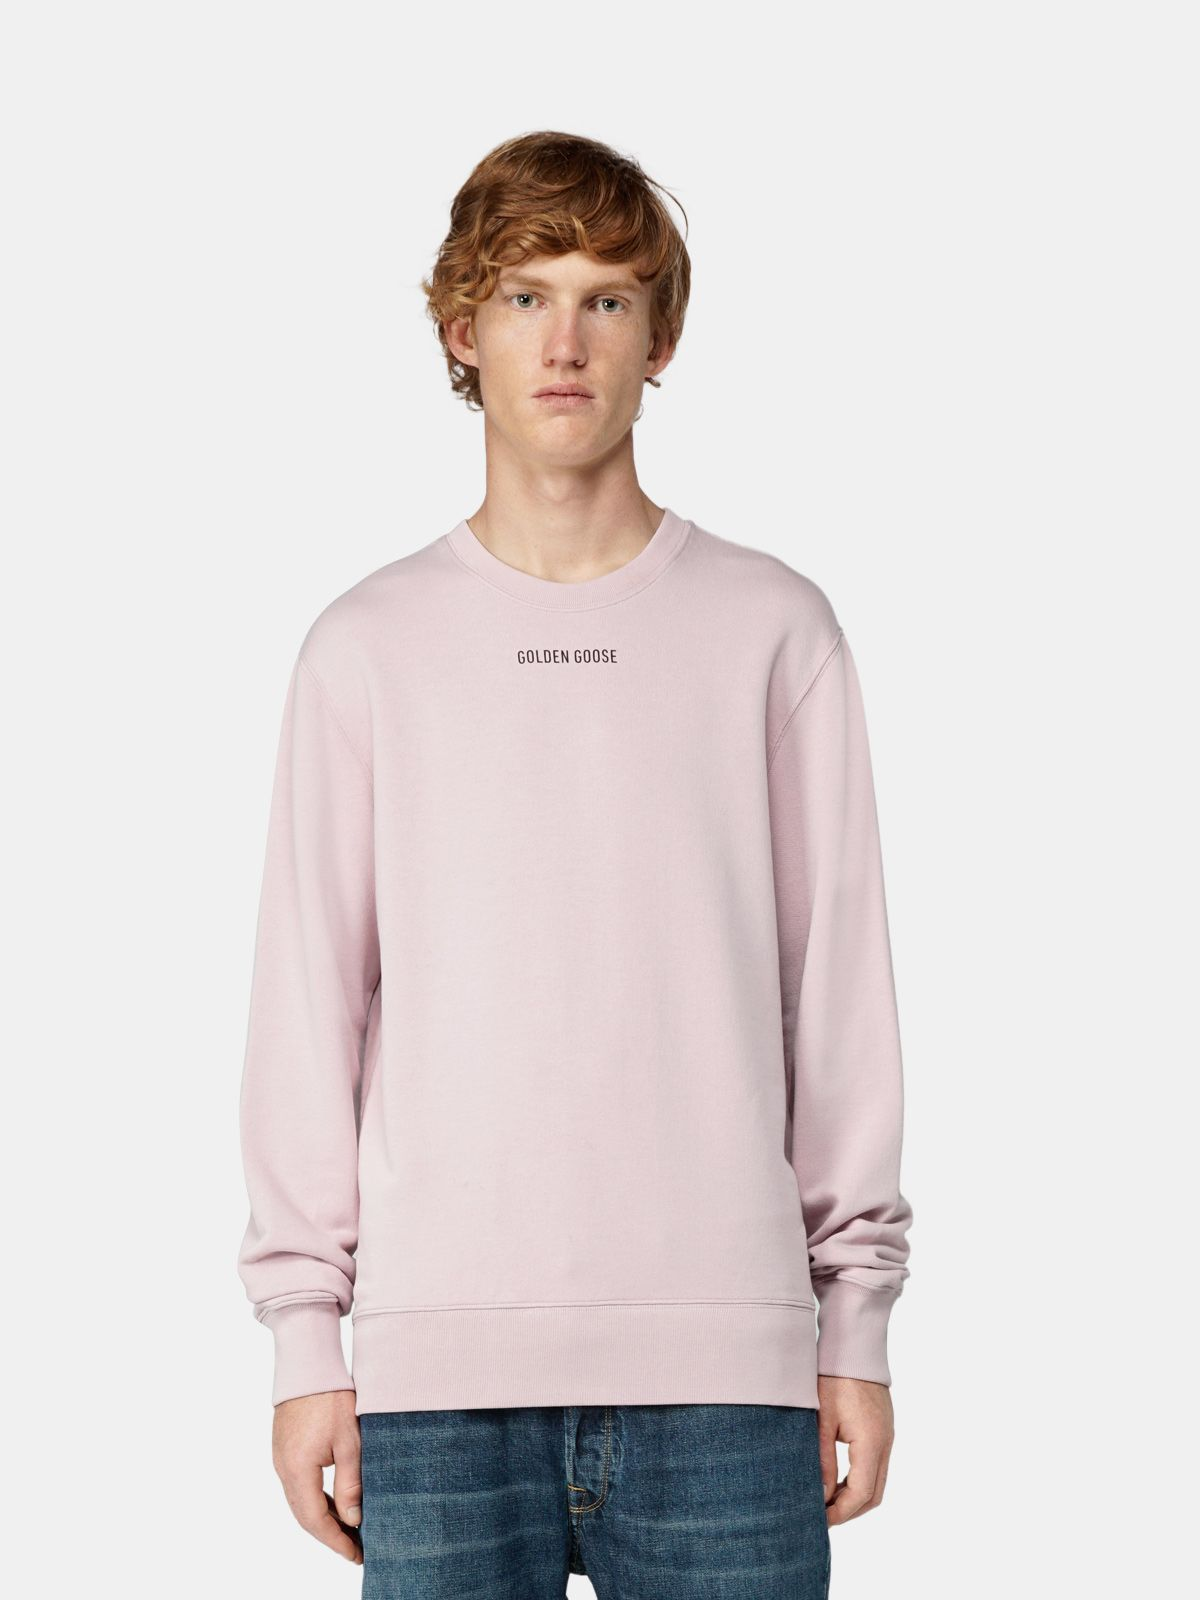 Golden Goose - Archibald sweatshirt with Sneakers Lover print on the back in